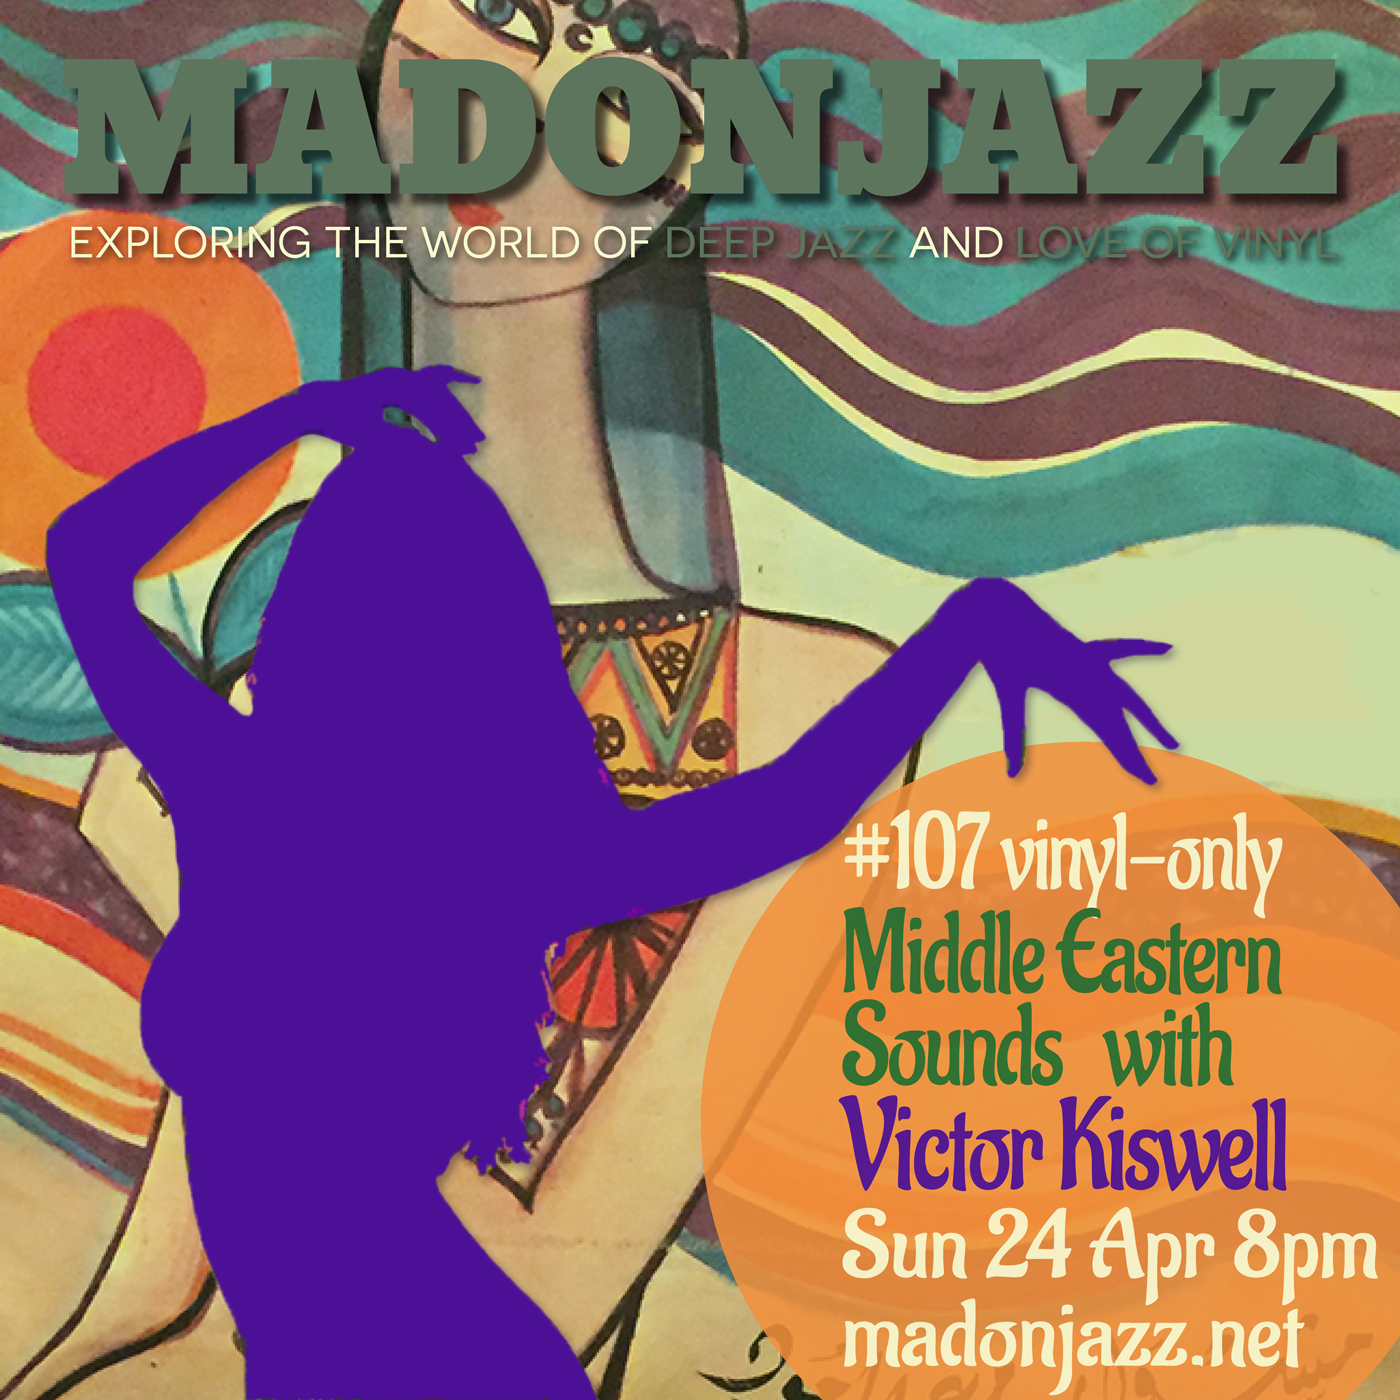 MADONJAZZ #109: Deep Jazz , Afro & M. Eastern Sounds w/ Thea and Mark G.